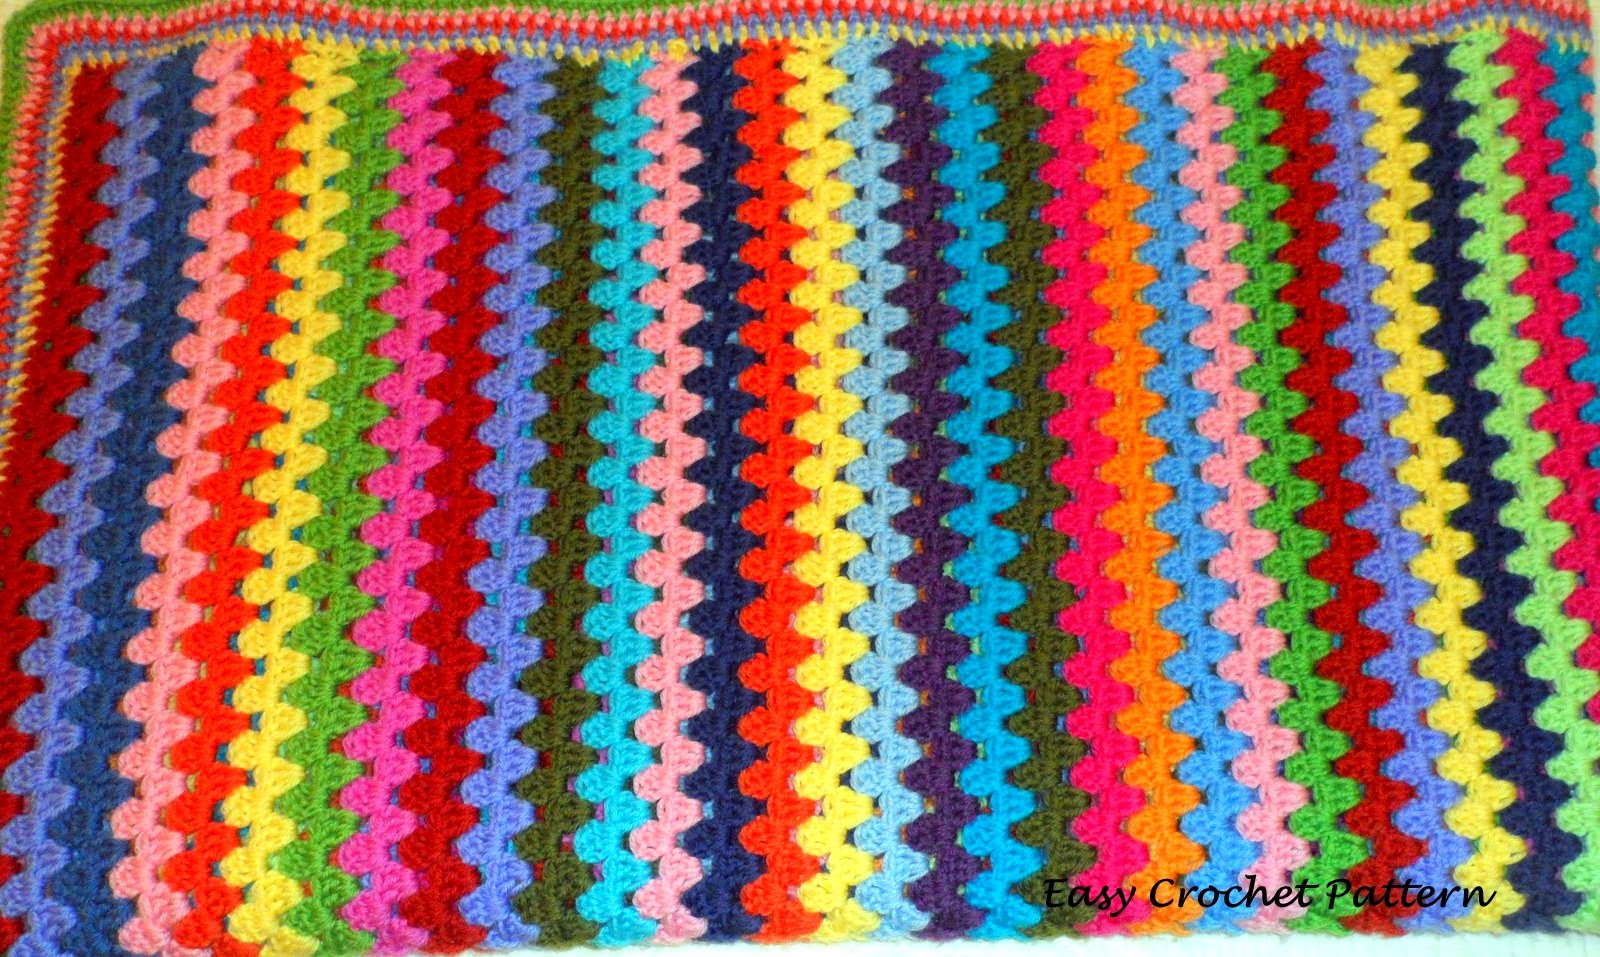 Crochet Afghan Patterns Stripes : Easy Crochet Pattern: Granny Stripe Afghan Chart